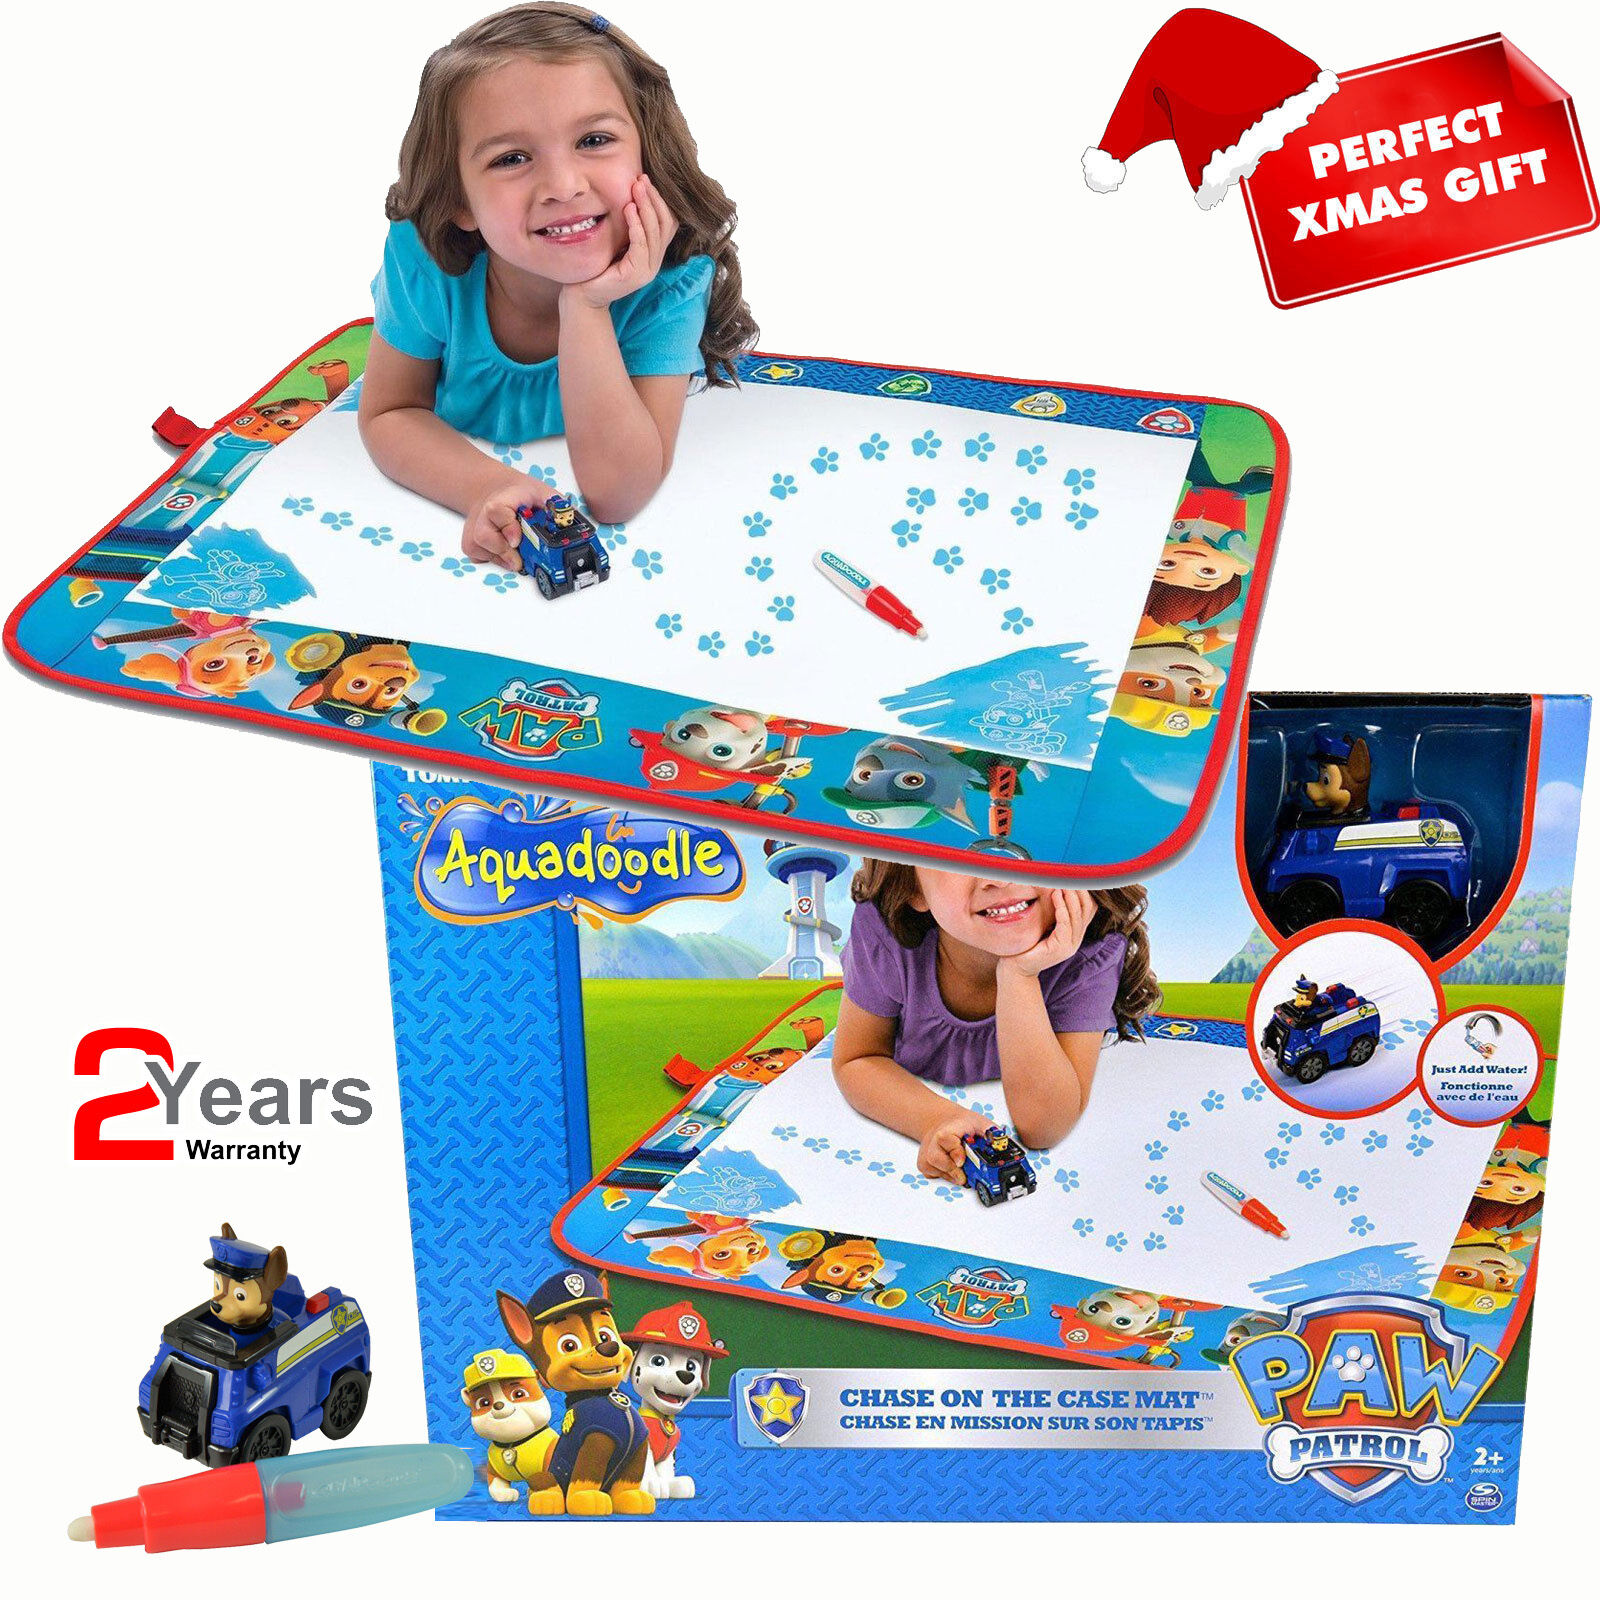 E72523 TOMY Paw Patrol Aquadoodle Large Water Play Mat Toddler Children Age 2